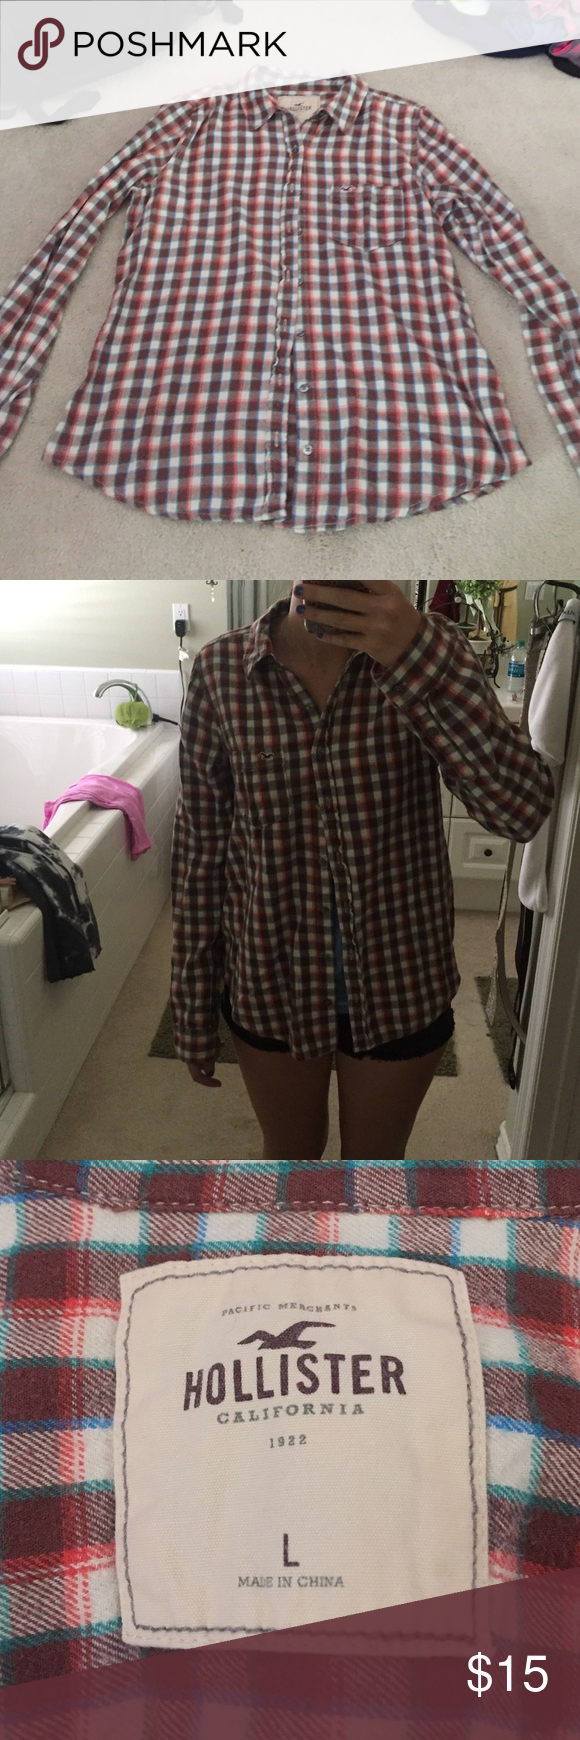 Hollister flannel Cute hollister flannel, size large. Colors are red, cream, and brown mostly with small amounts of blue and green stripes Hollister Tops Button Down Shirts